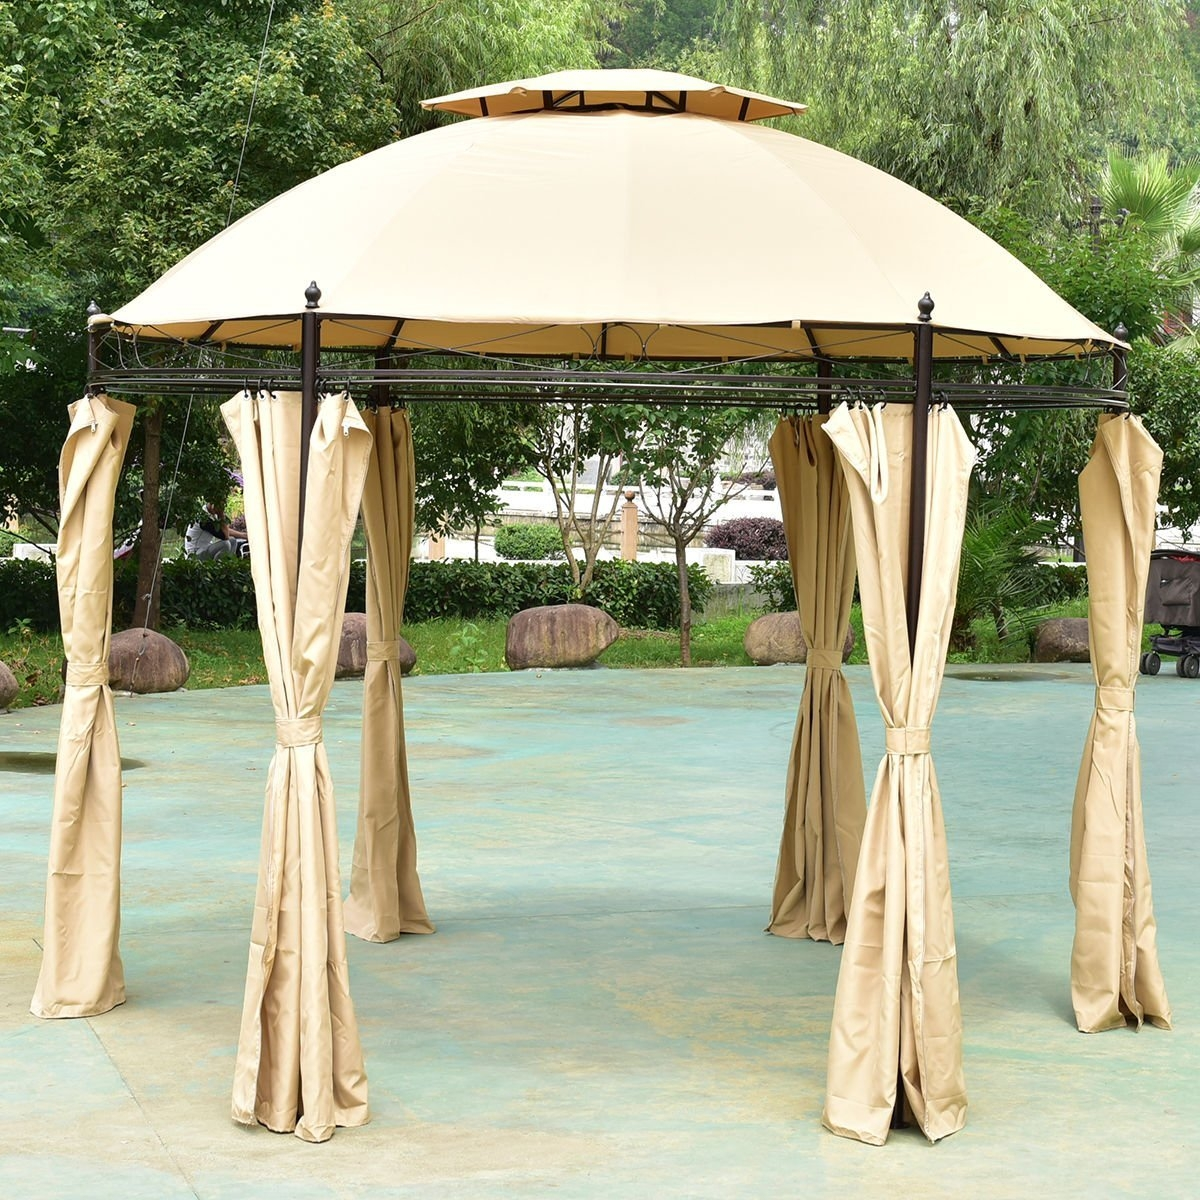 New MTN-G MTN-G 10ft Round Outdoor Gazebo Canopy Shelter Awning Tent Patio Garden by MTN Gearsmith